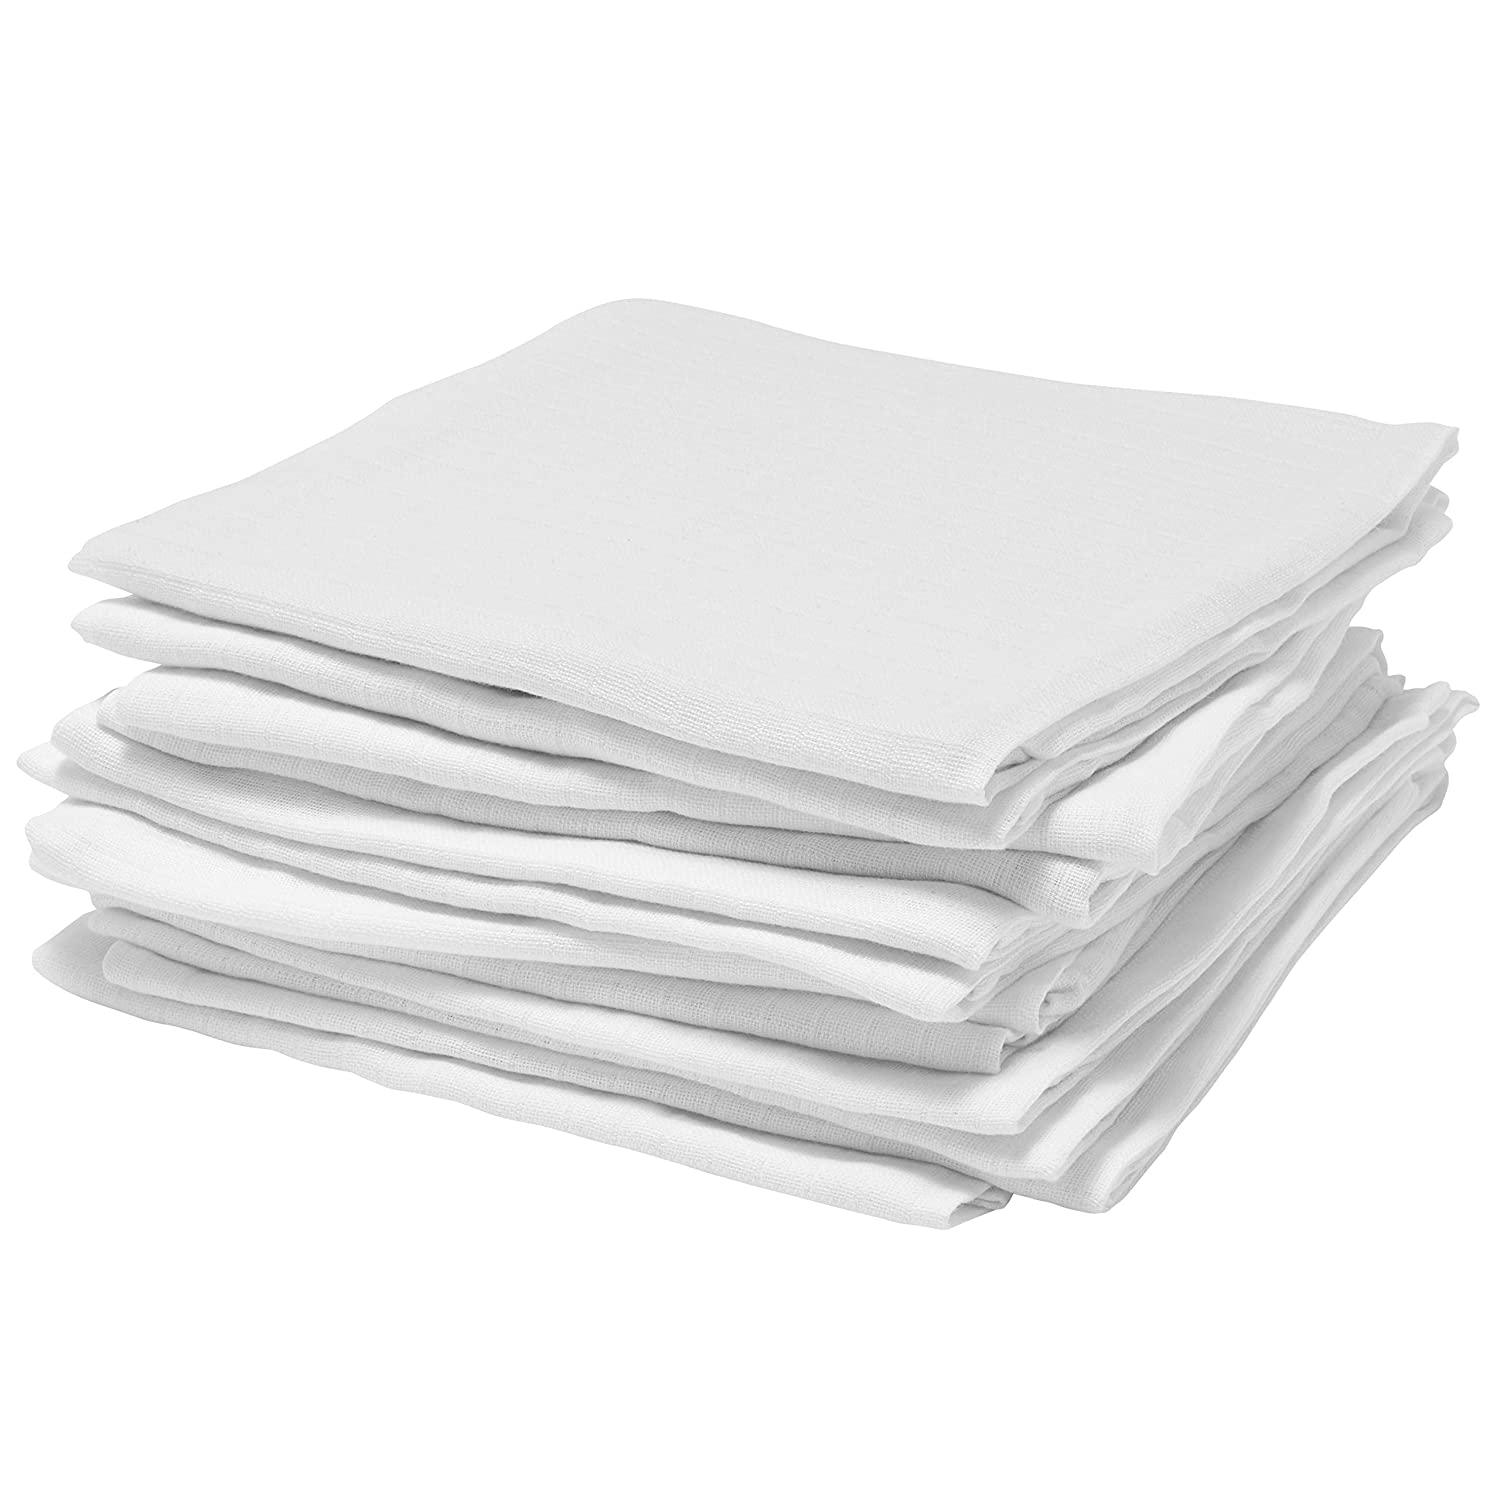 Bloomsbury Mill - High Quality 100% Cotton Muslin Squares - 70cm x 70cm - Pack of 12 - White